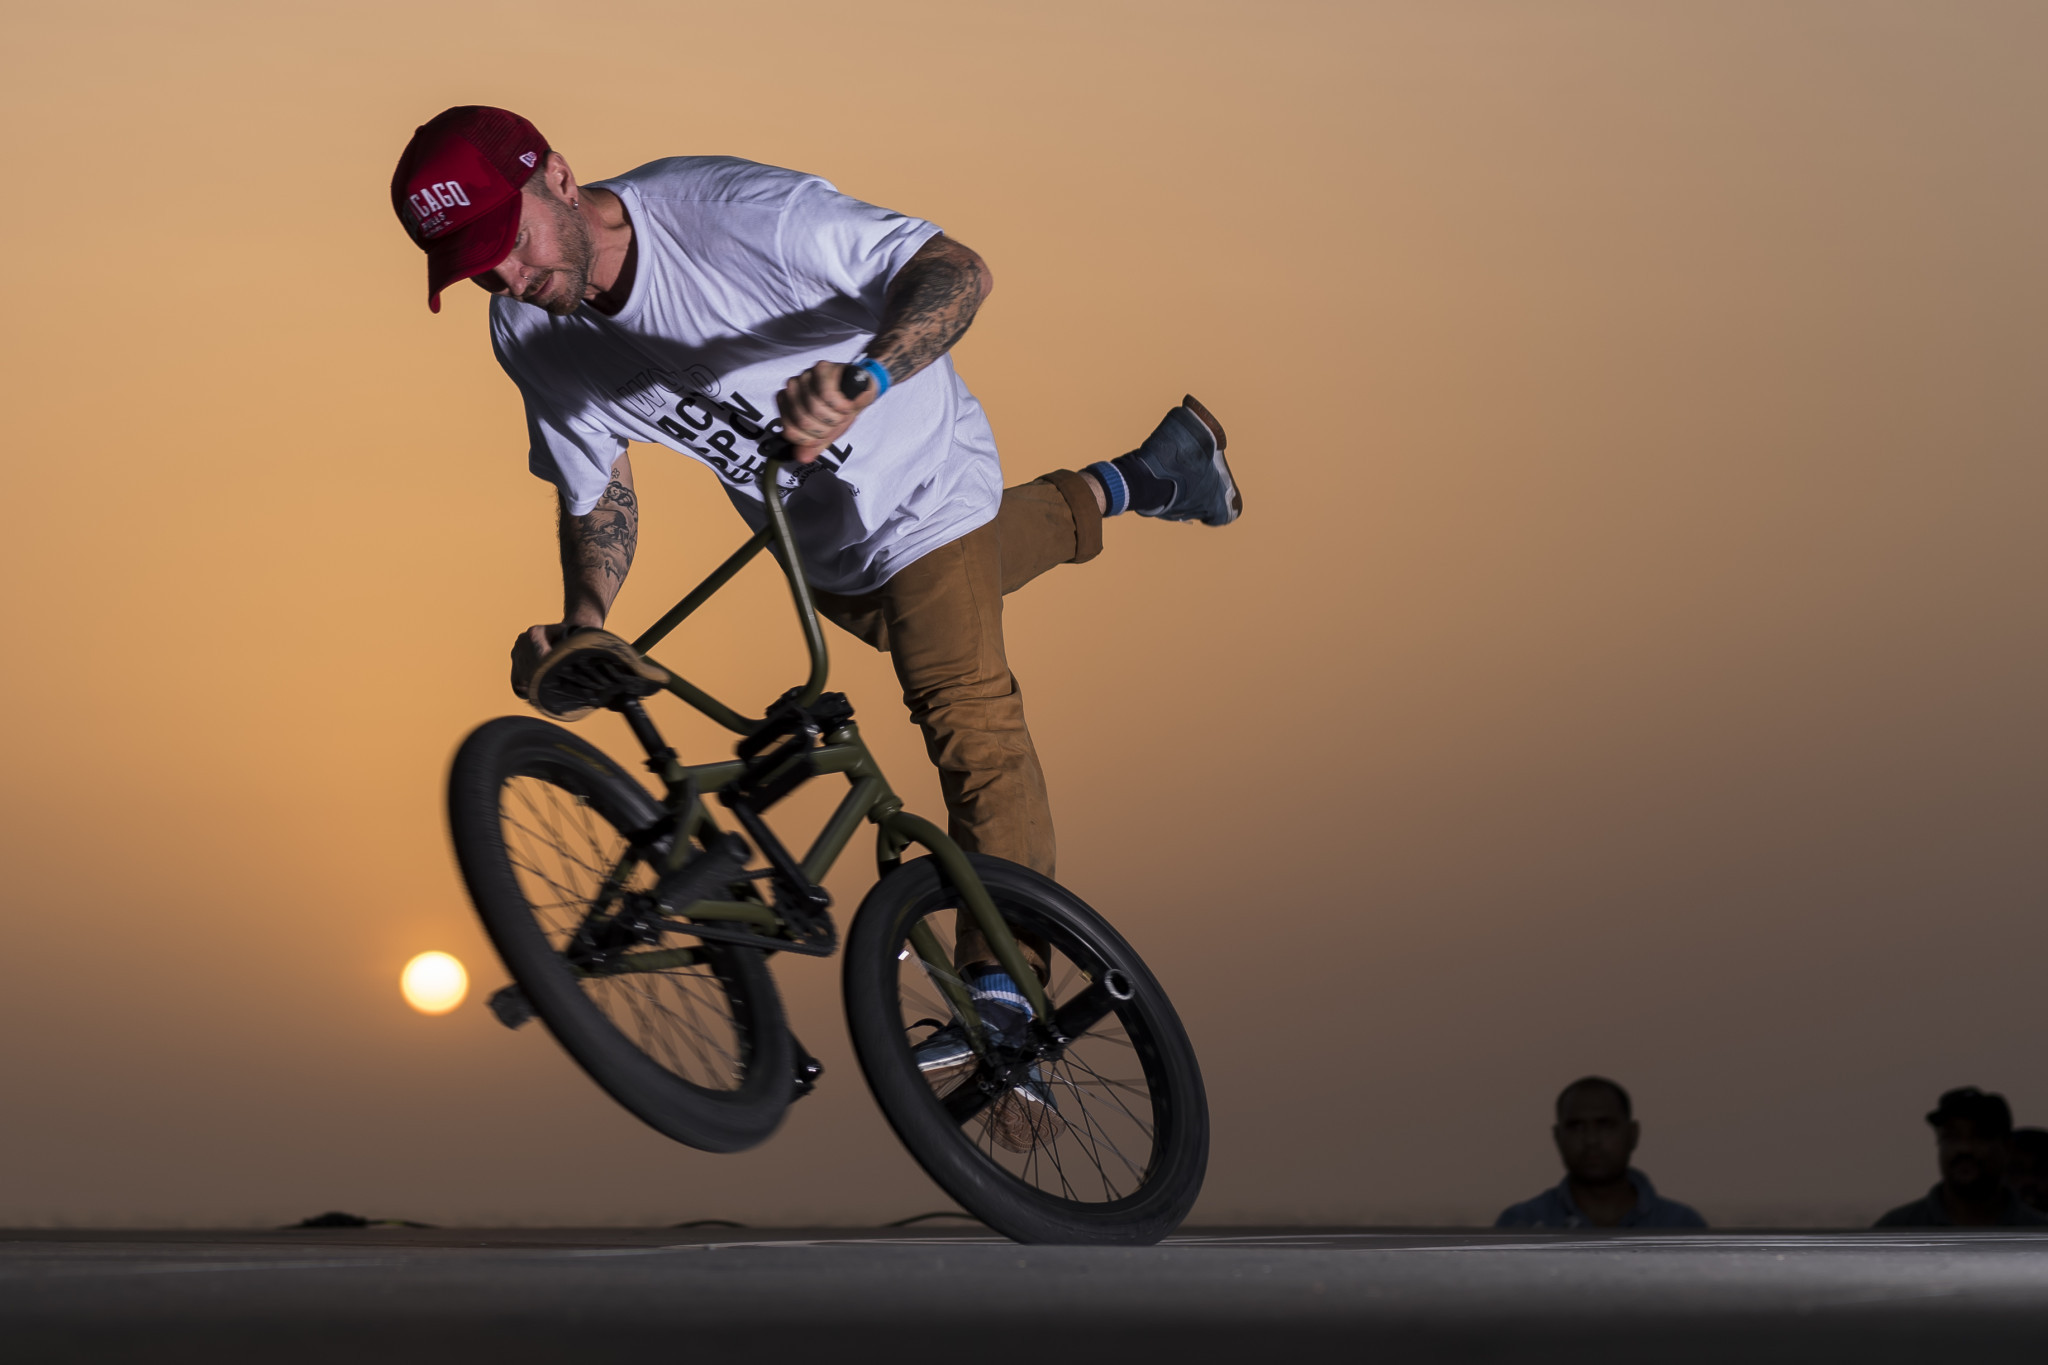 Four-time BMX flatland world champion Alex Jumelin topped qualifying at the FISE Battle of the Champions in Saudi Arabia ©Getty Images